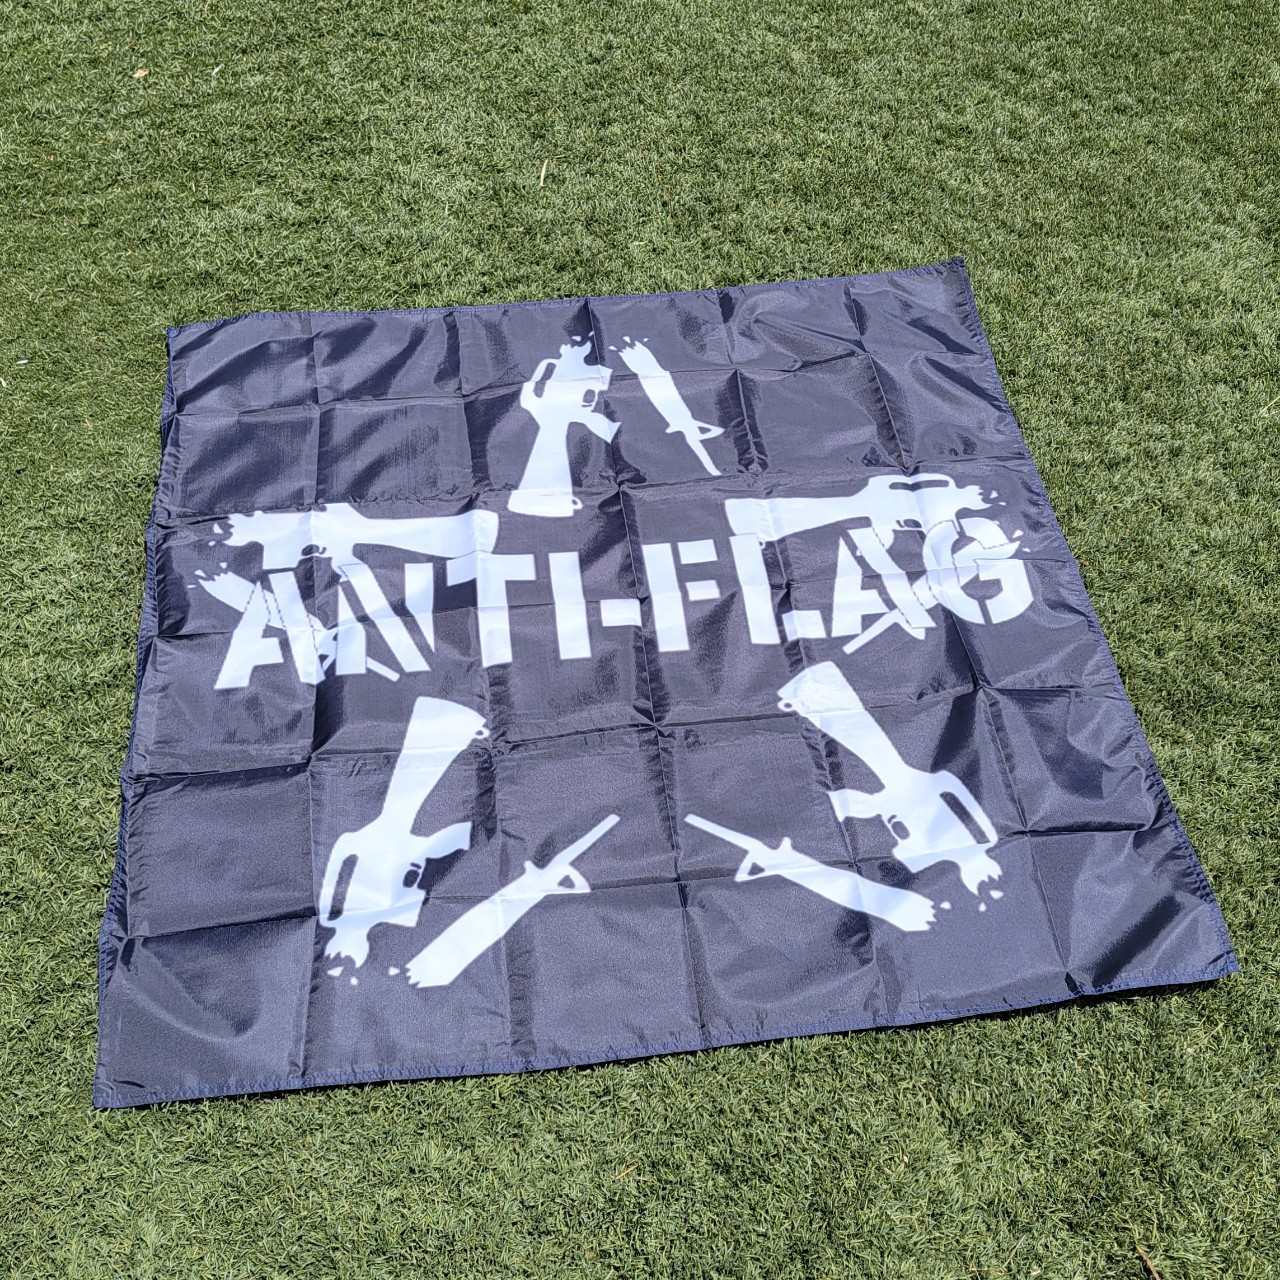 Product Image 1 - Anti-Flag Flag  Size - 4X4 Feet Condition